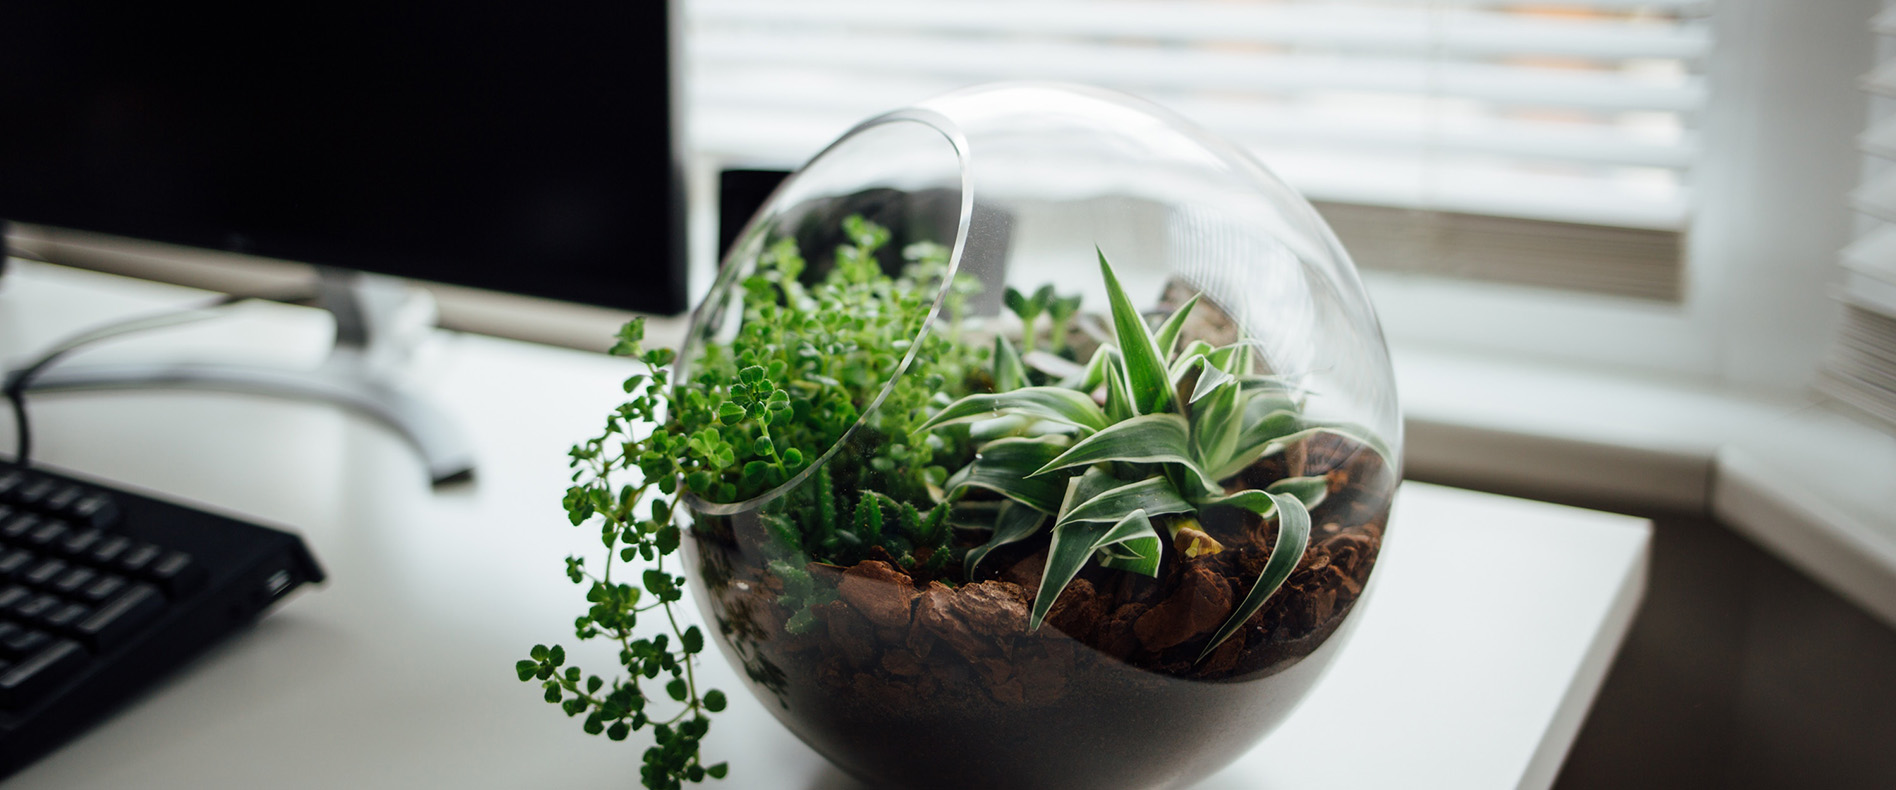 Terrarium filled with plants